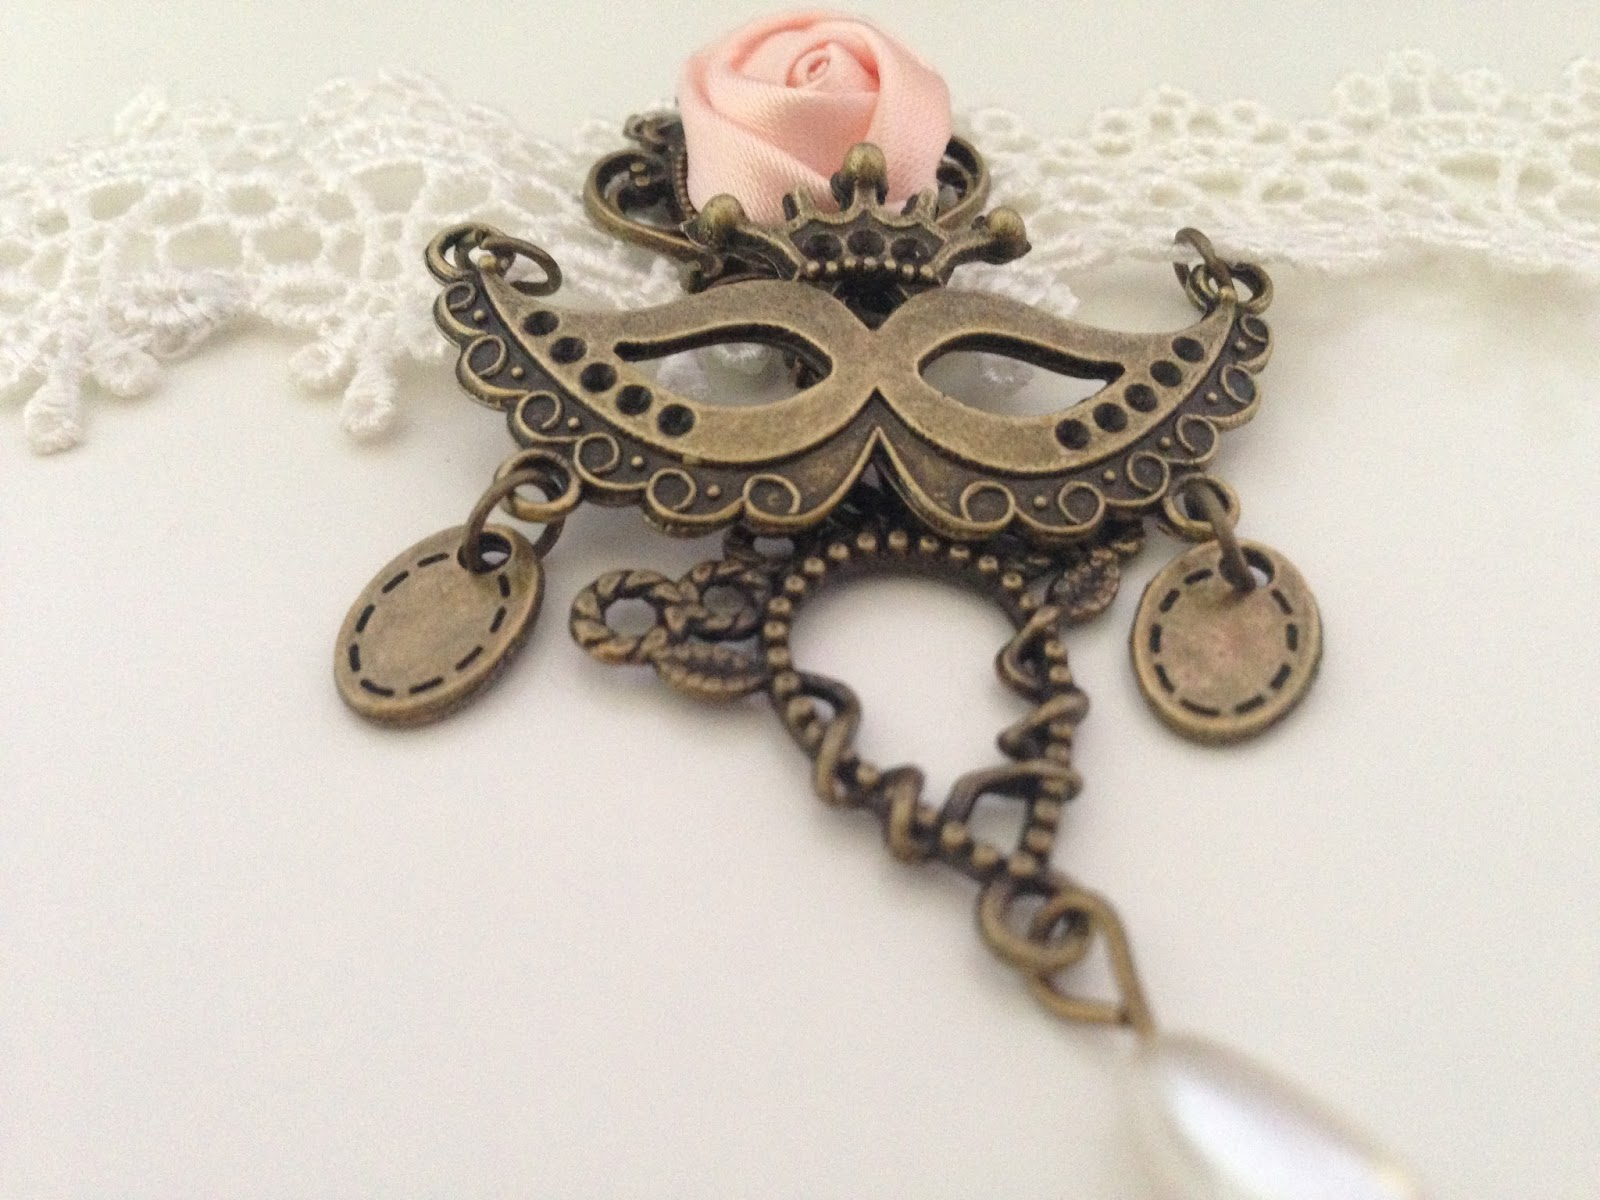 More photos of Born Pretty Store's lolita-style white lace choker necklace, featuring a pink rose and alloy mask.